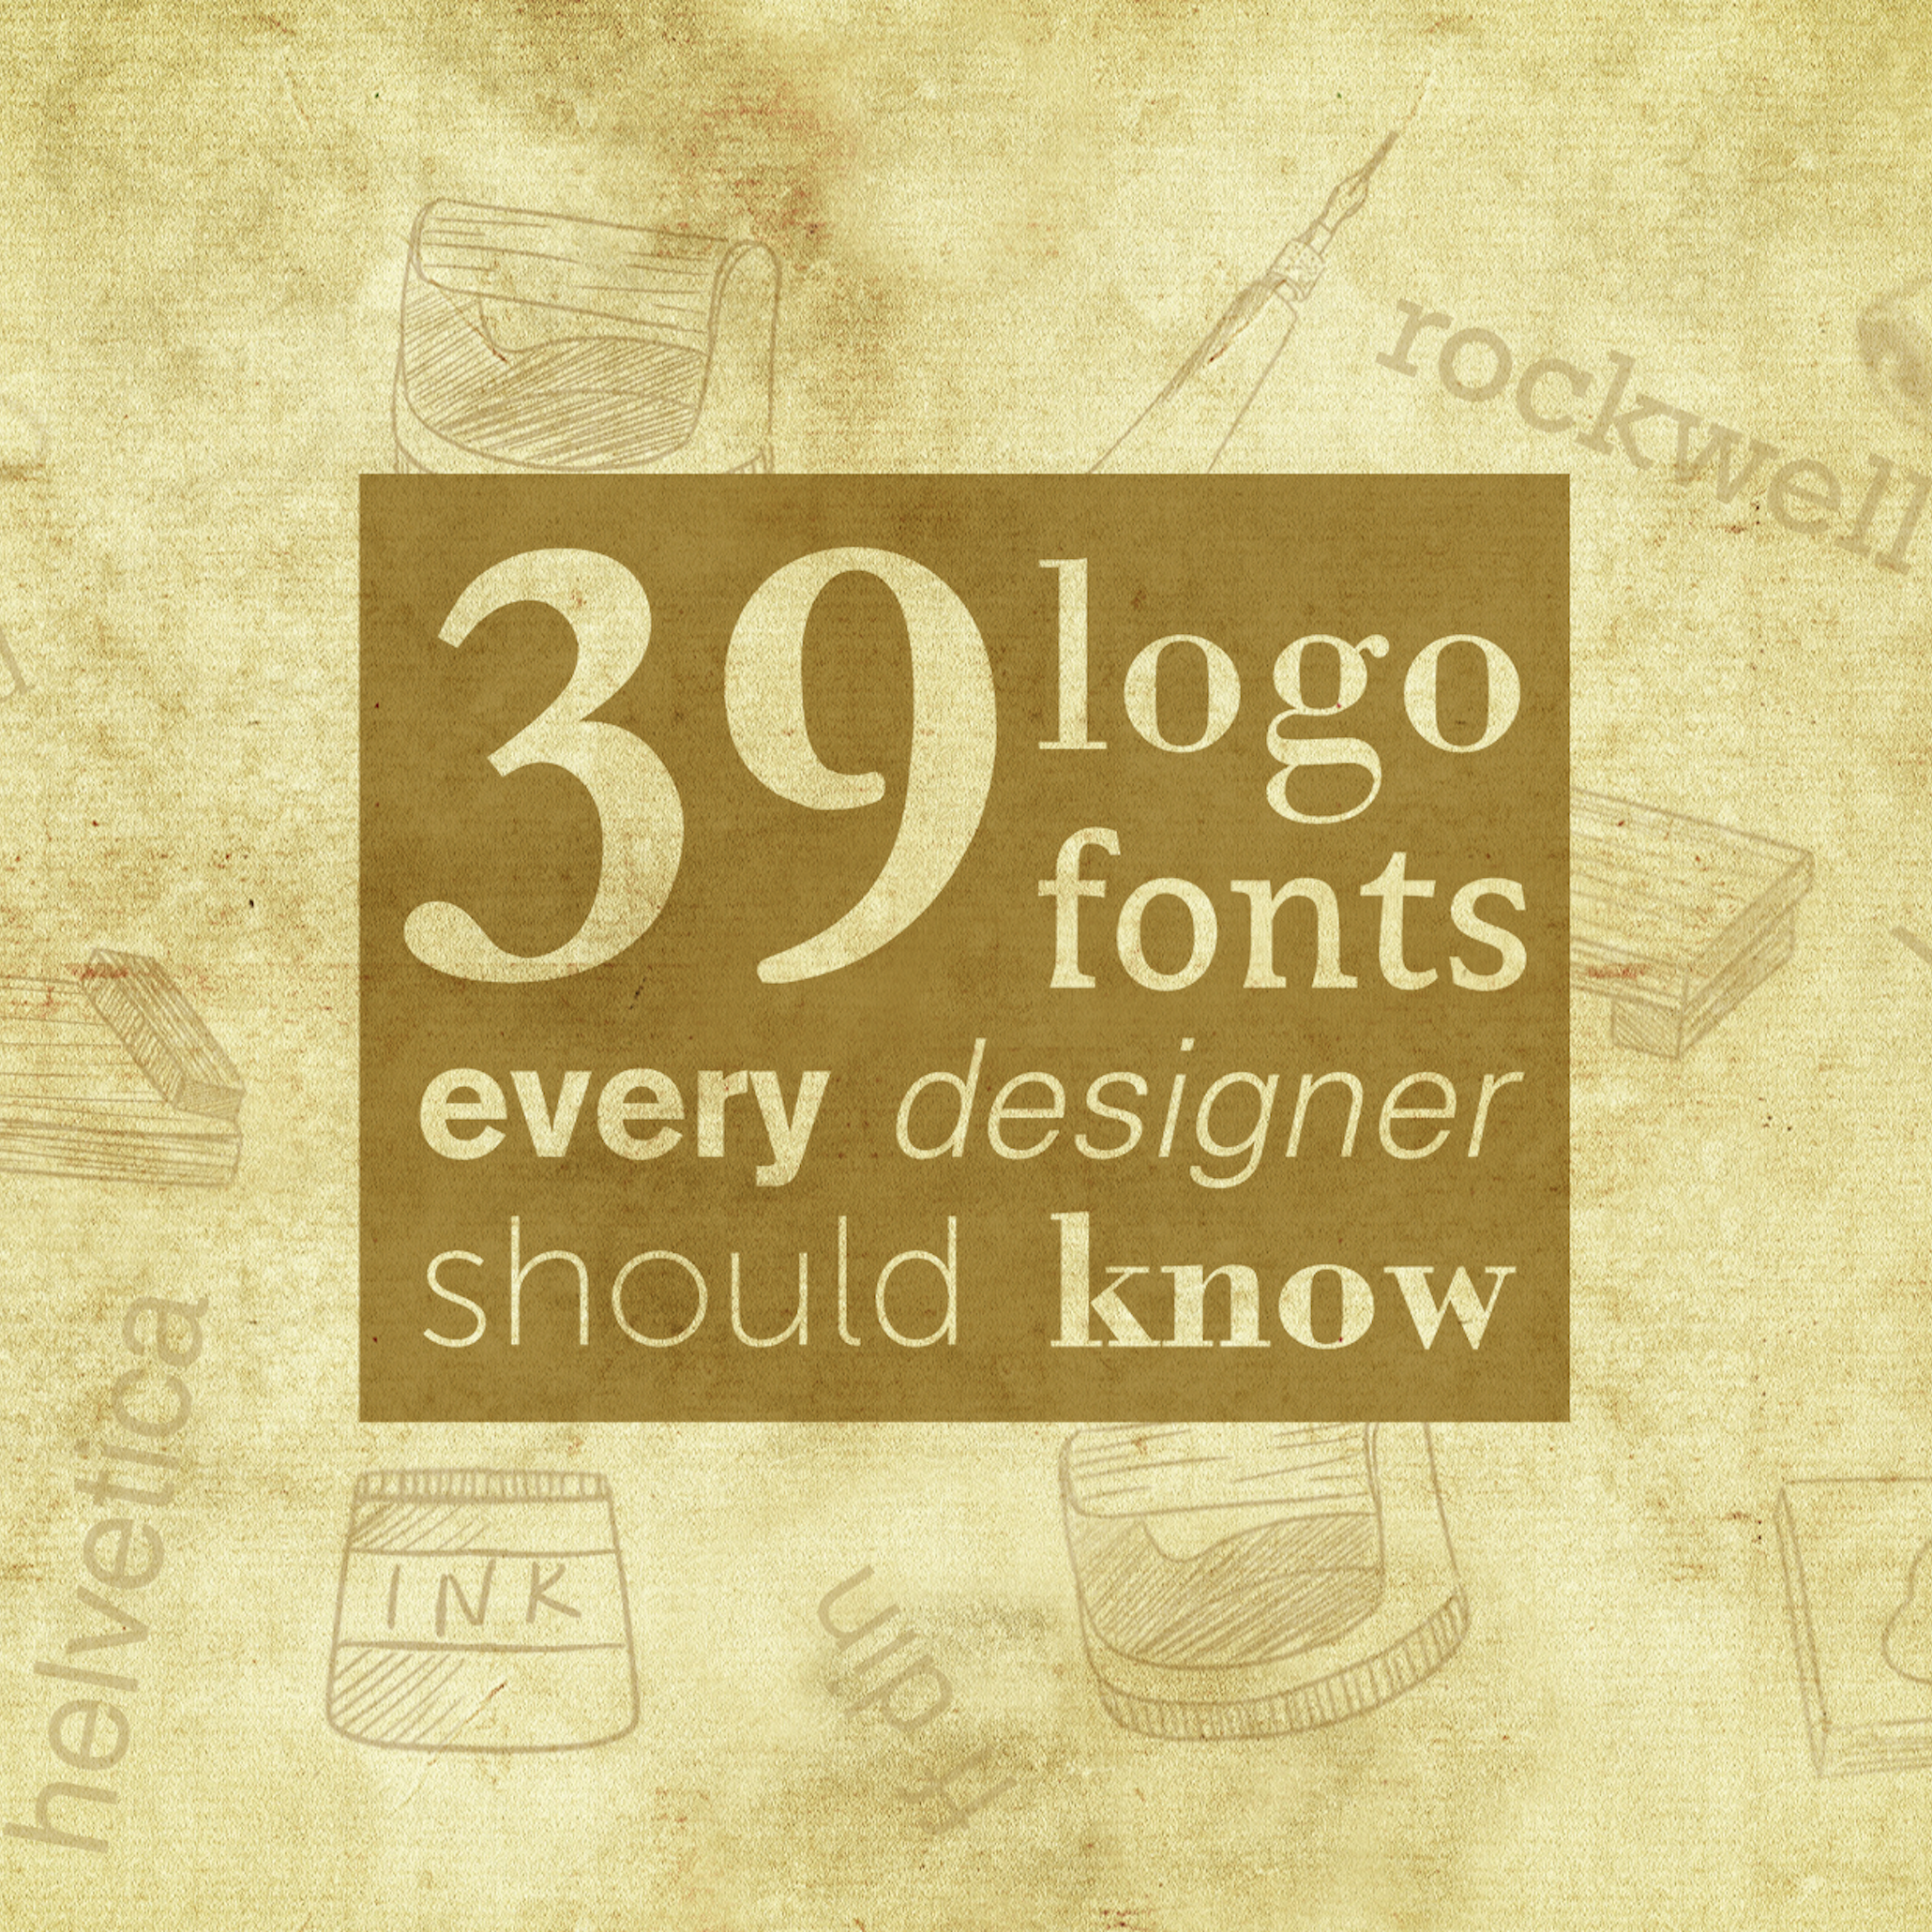 39 logo fonts everyone should know - 99designs